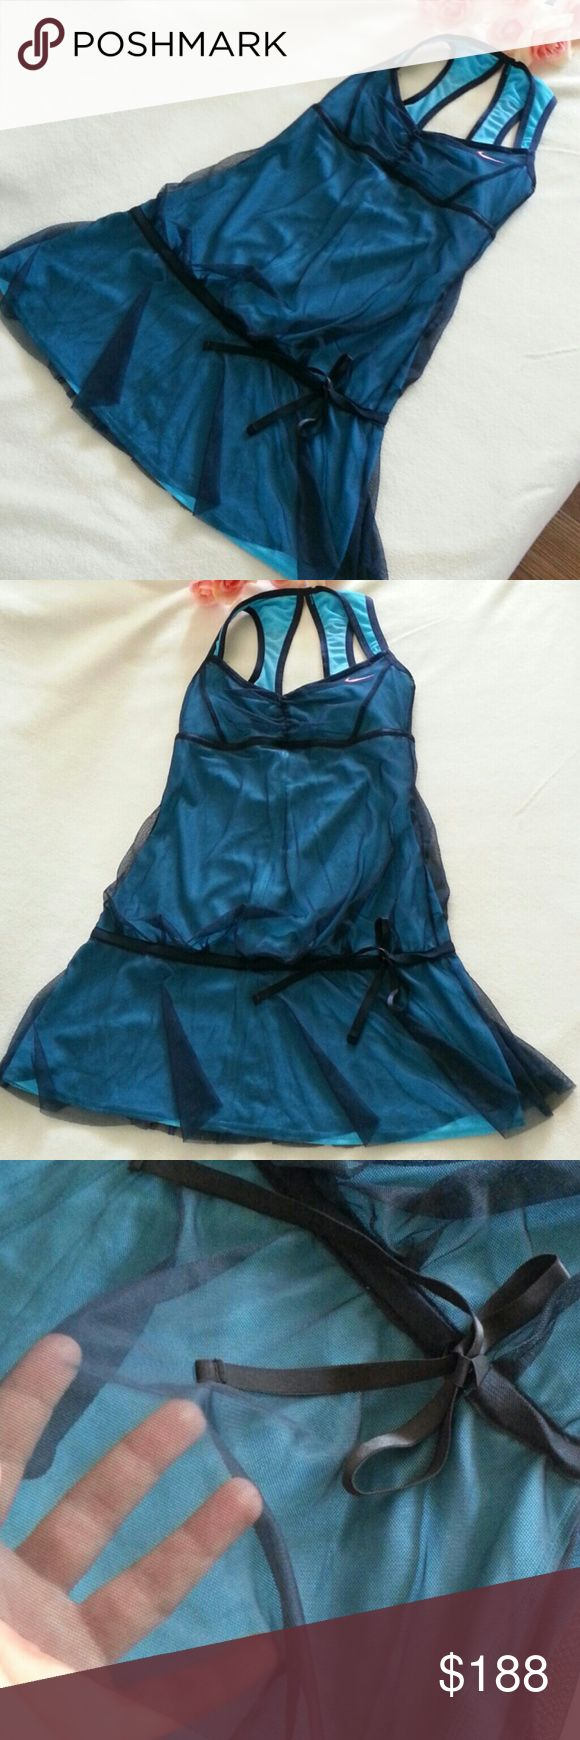 """NOWT Nike Fit Dry Tennis Dress Size XS BRAND NEW WITHOUT TAG Teal green blue color with cute lace style Armpit to hem 22.5"""" Nike Dresses"""